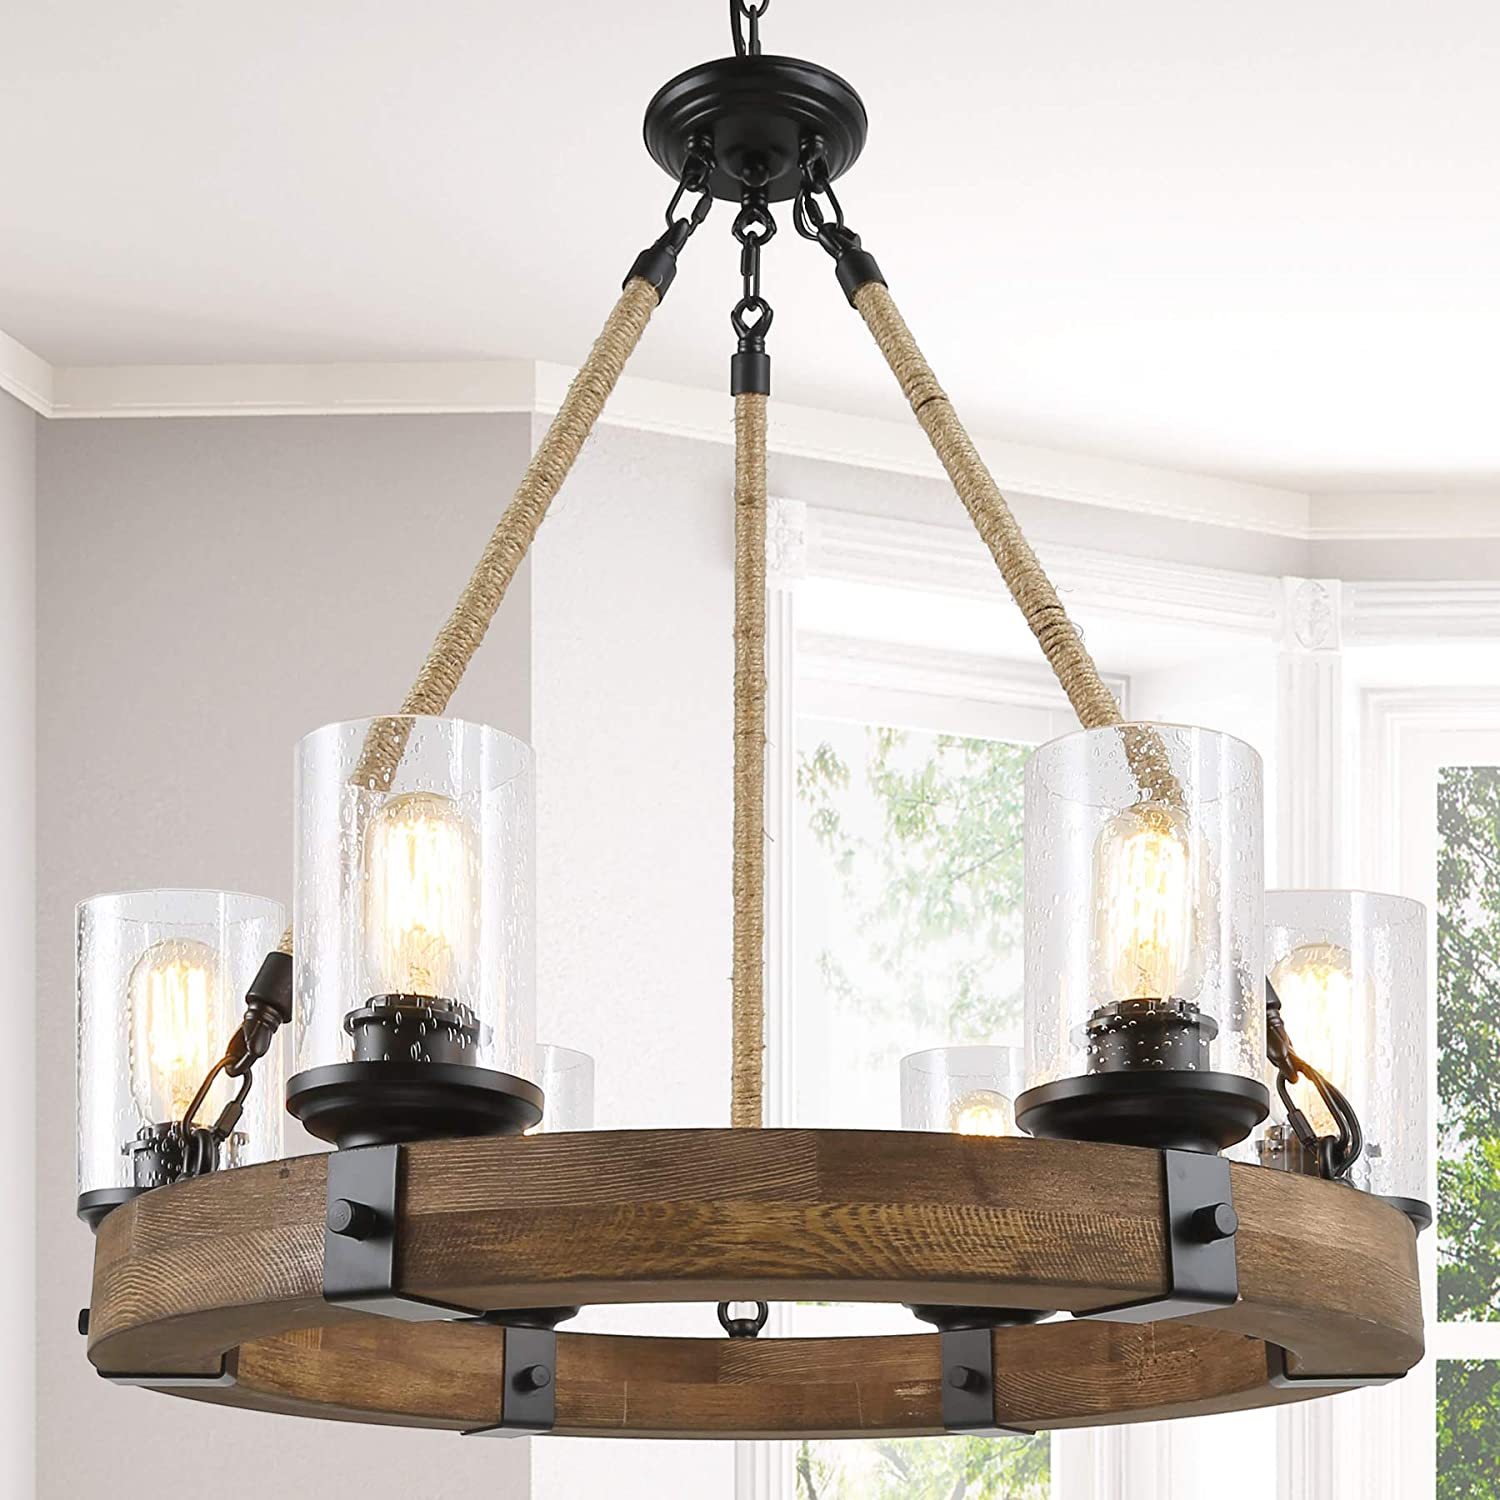 Farmhouse Chandelier For Dining Rooms 6 Light Wagon Wheel Chandelier Hemp Rope Wood Chandelier With Seeded Glass Shade 25 Dia Amazon Com